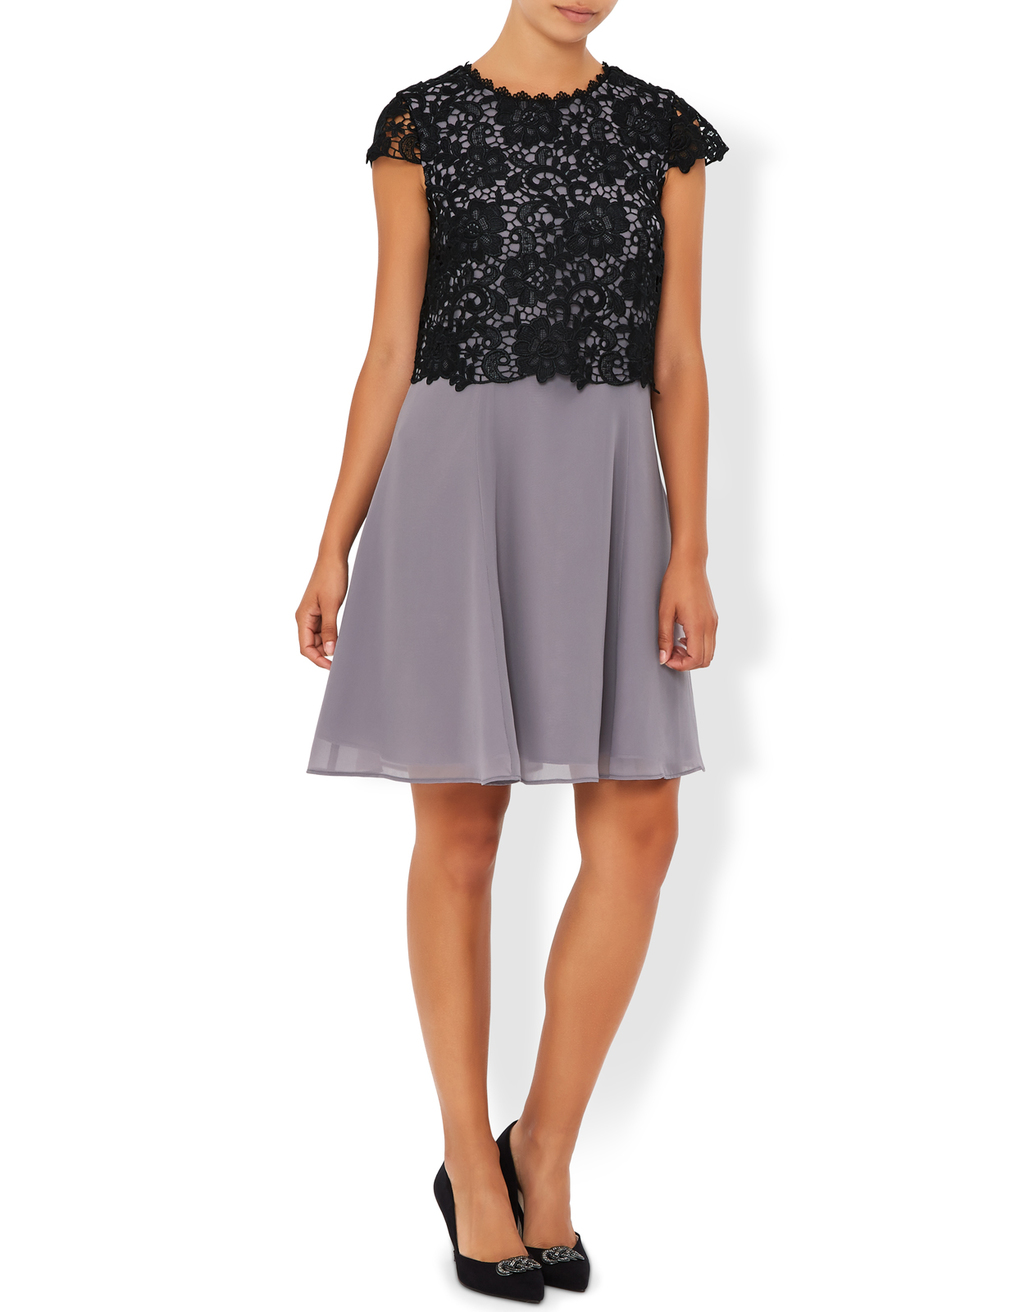 Jasper Dress - sleeve style: capped; secondary colour: lilac; predominant colour: black; occasions: evening; length: just above the knee; fit: fitted at waist & bust; style: fit & flare; fibres: polyester/polyamide - 100%; neckline: crew; sleeve length: short sleeve; texture group: lace; pattern type: fabric; pattern size: light/subtle; pattern: patterned/print; embellishment: lace; multicoloured: multicoloured; season: s/s 2016